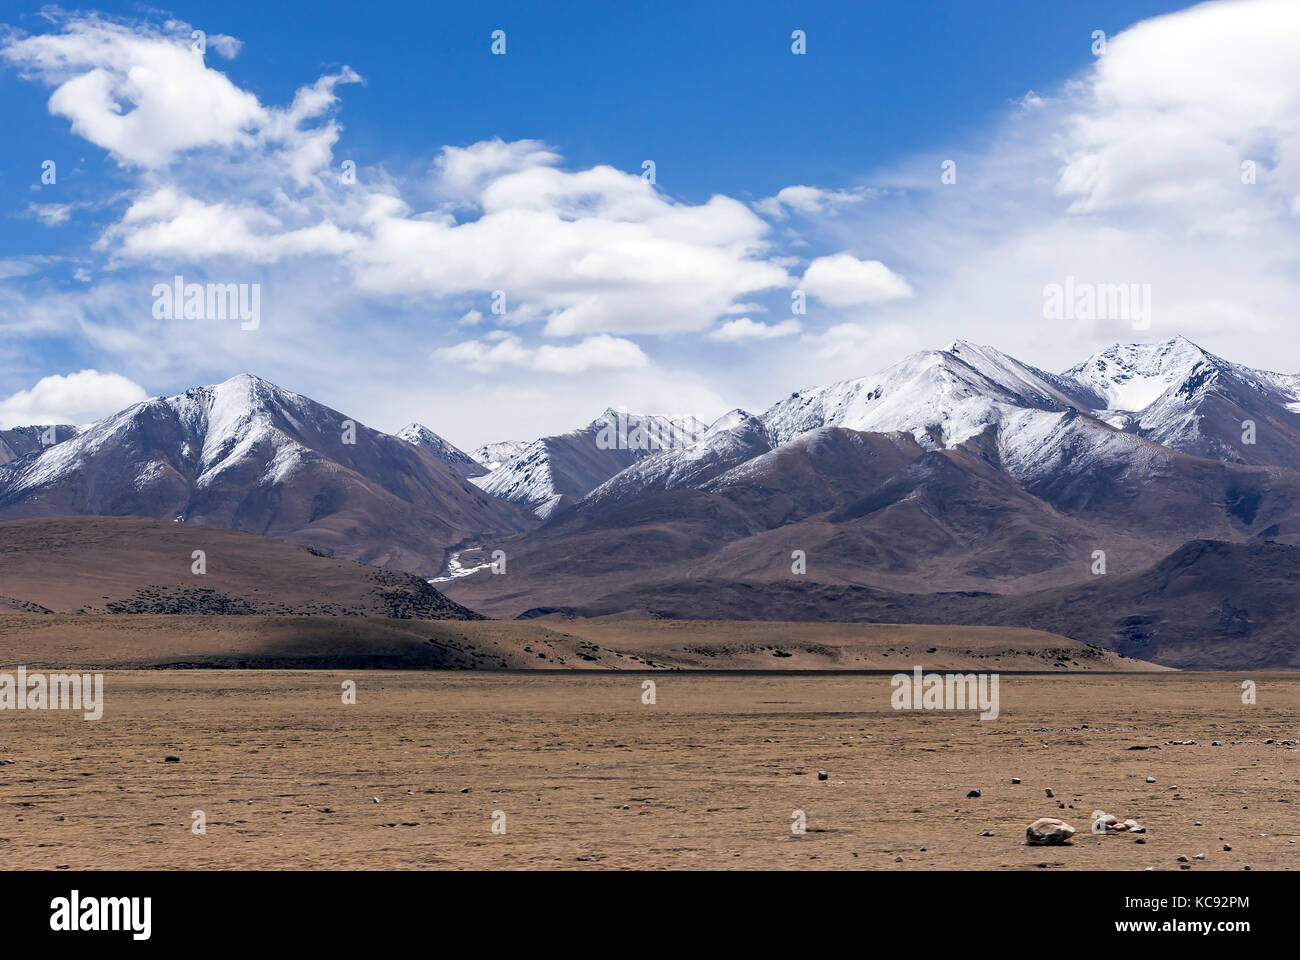 Typical mountain landscape - Tibet - Stock Image